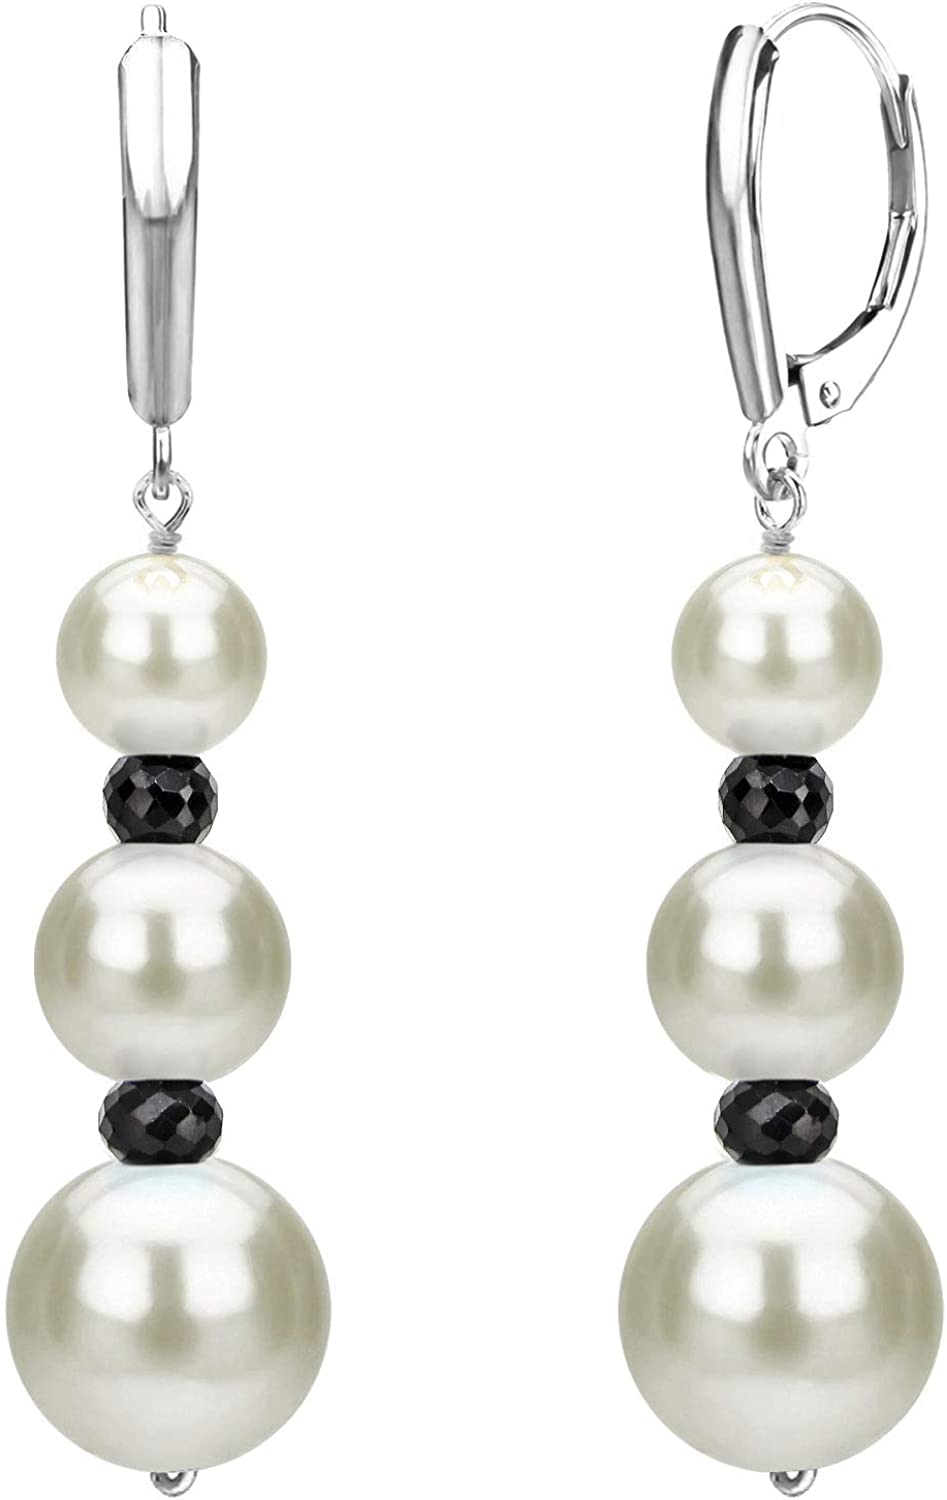 Lever-back Earrings with Graduated Freshwater Cultured White Pearl and Gemstones in 14k Gold or Silver